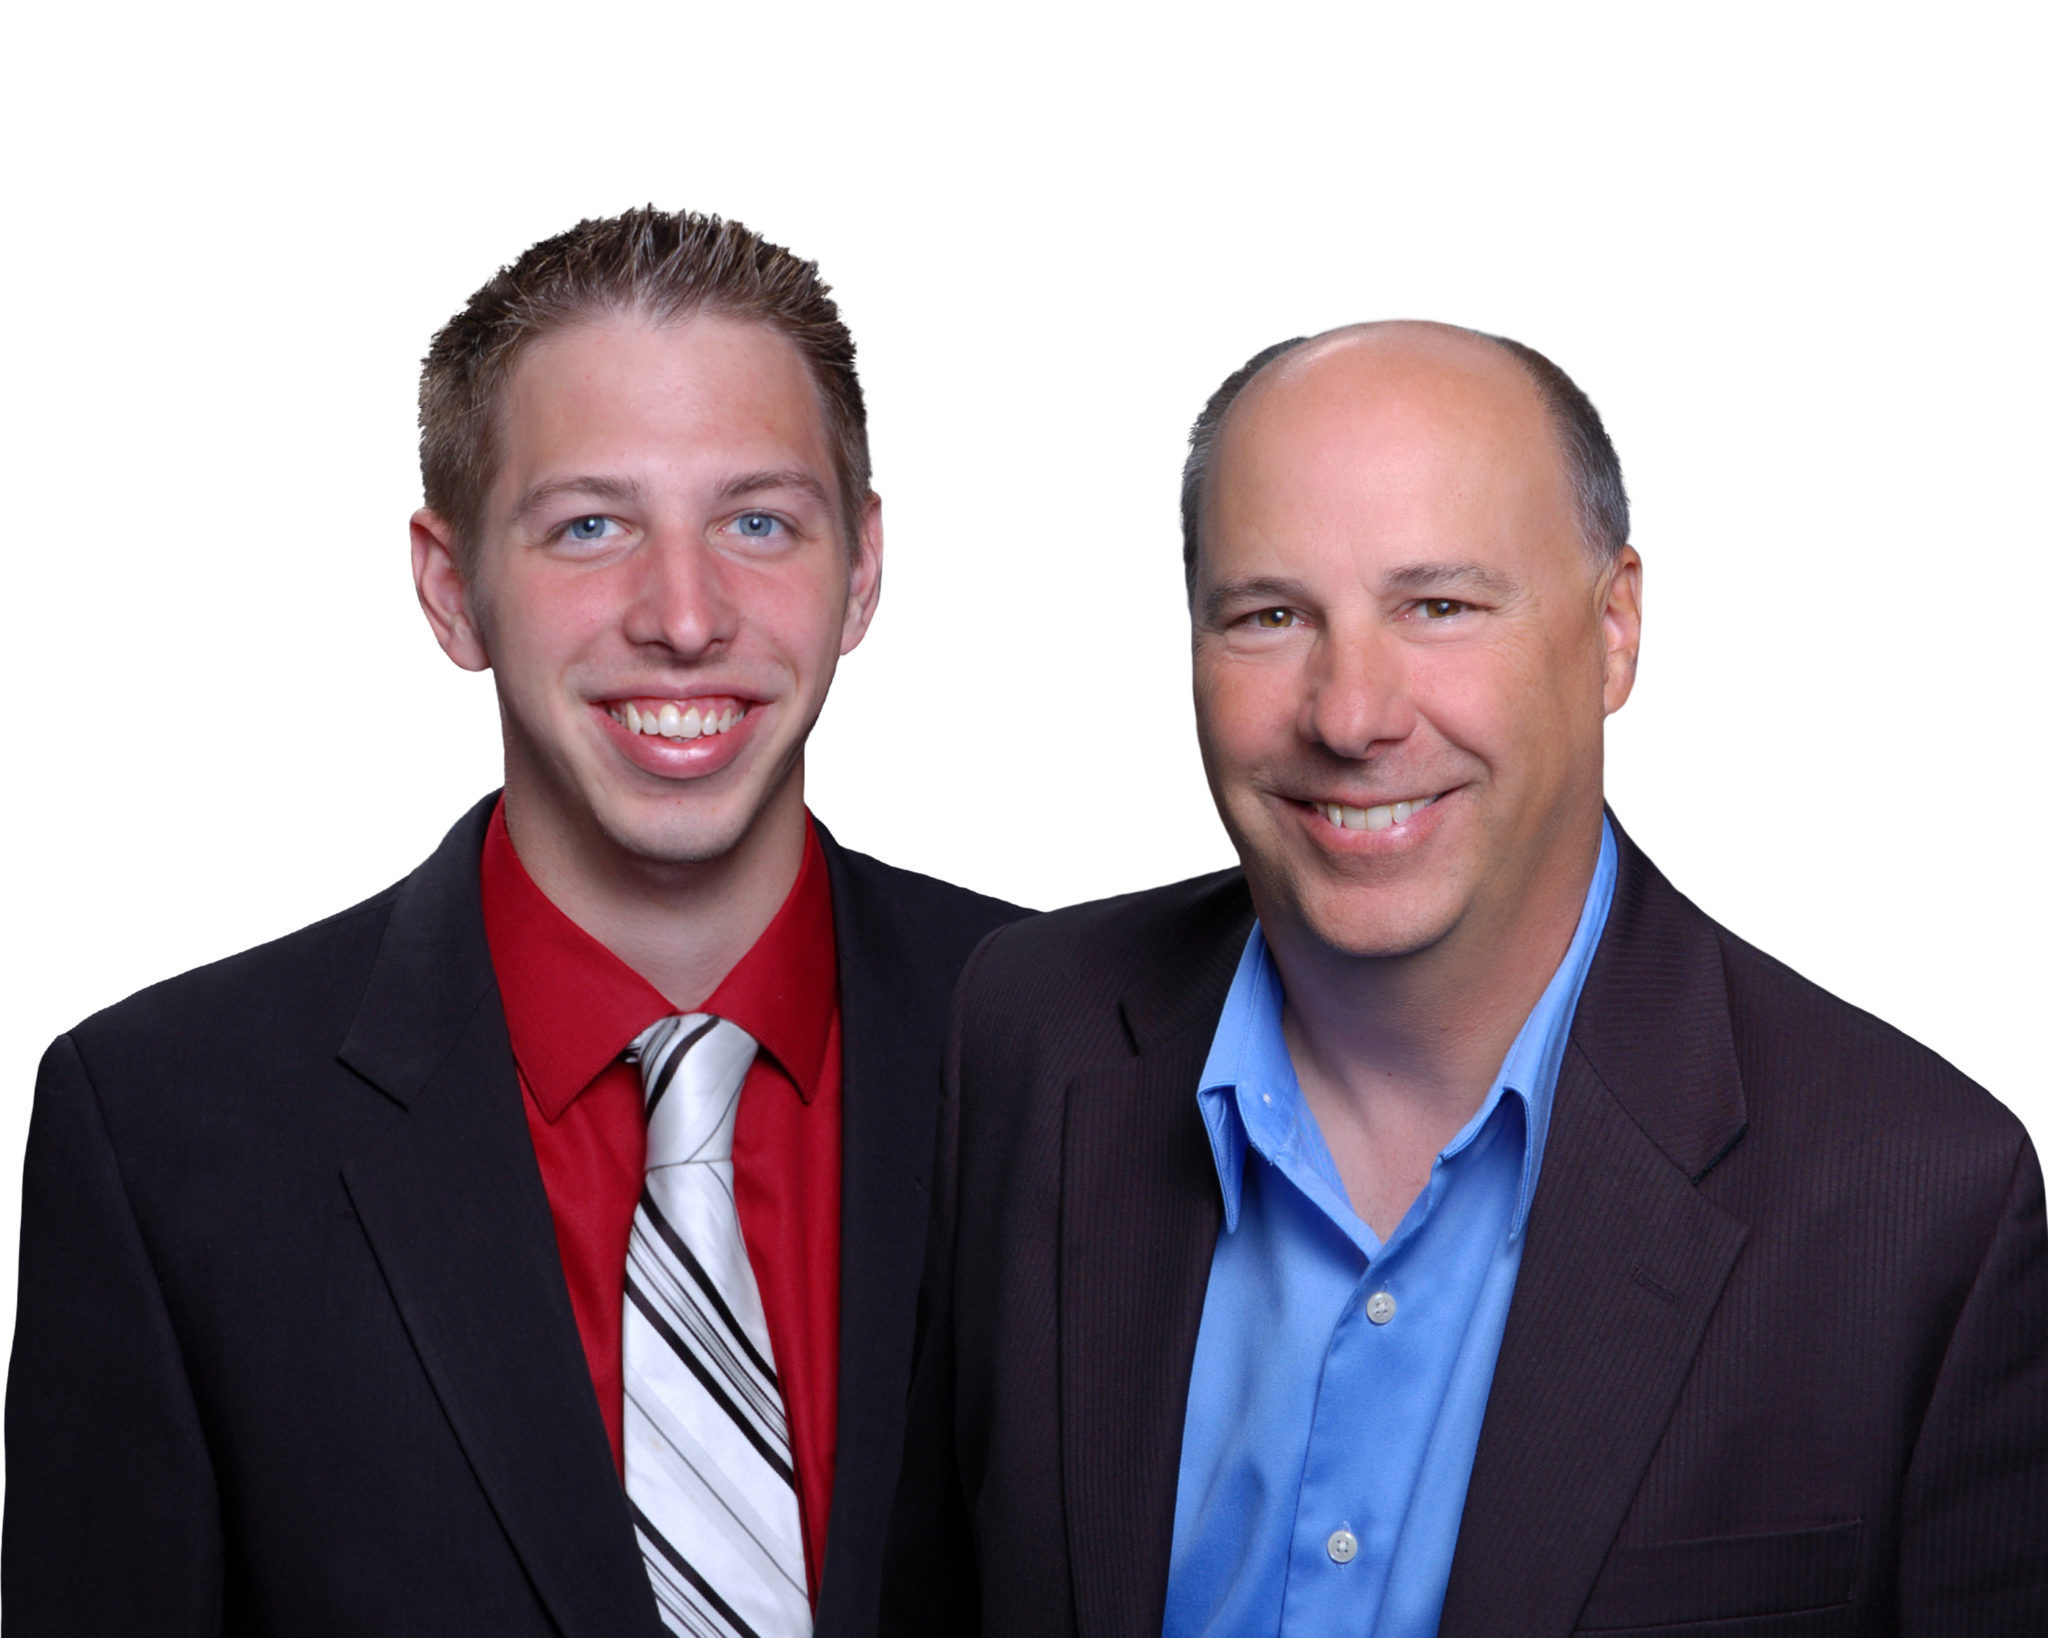 Brandon and Michael Doyle lead a father-son agent team.